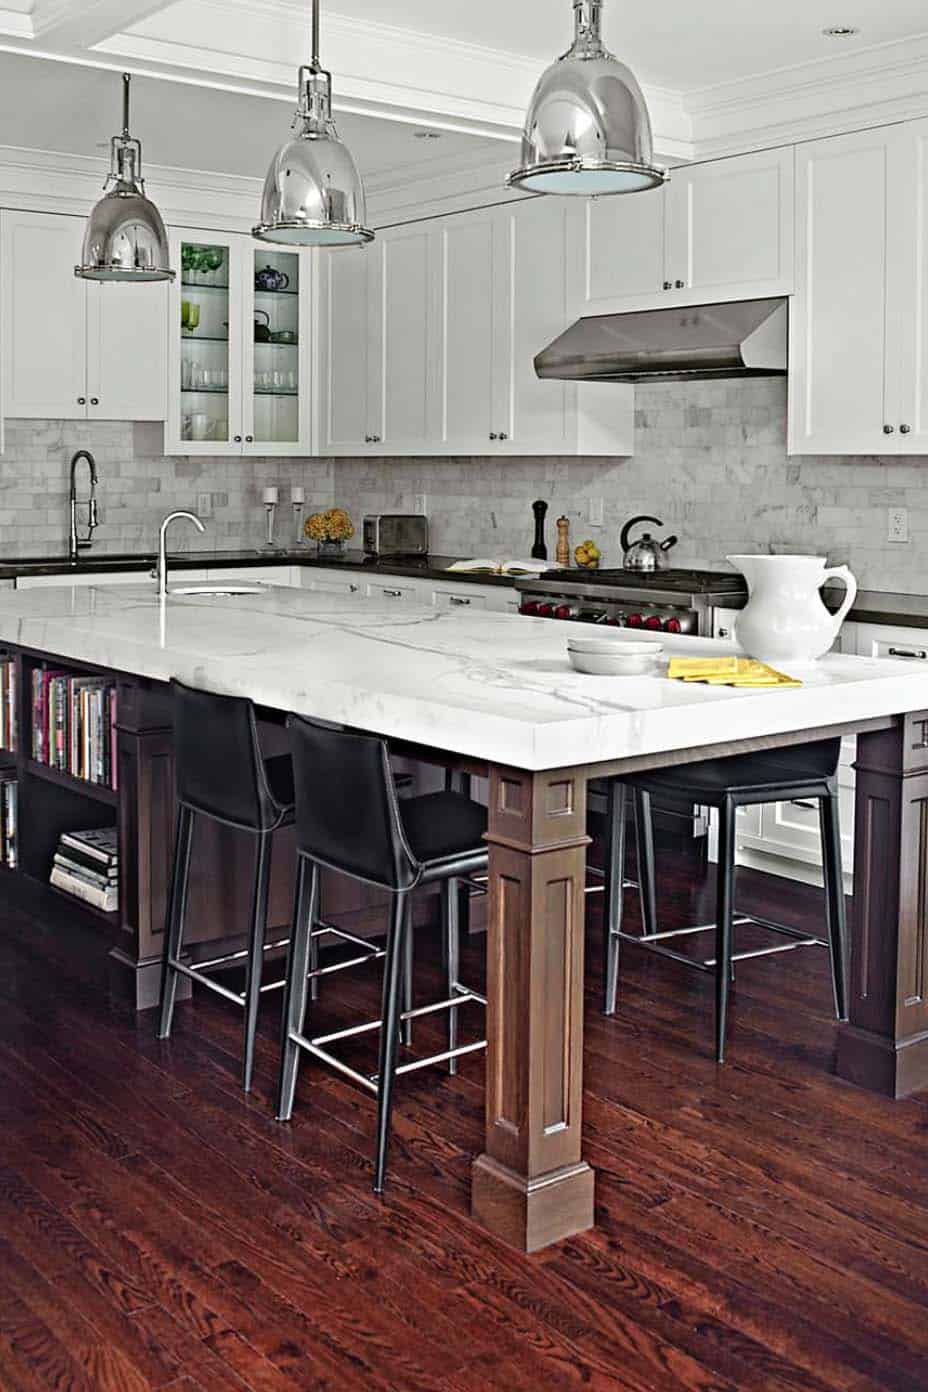 island kitchen images 25 dream kitchen islands that are utterly drool worthy 2883